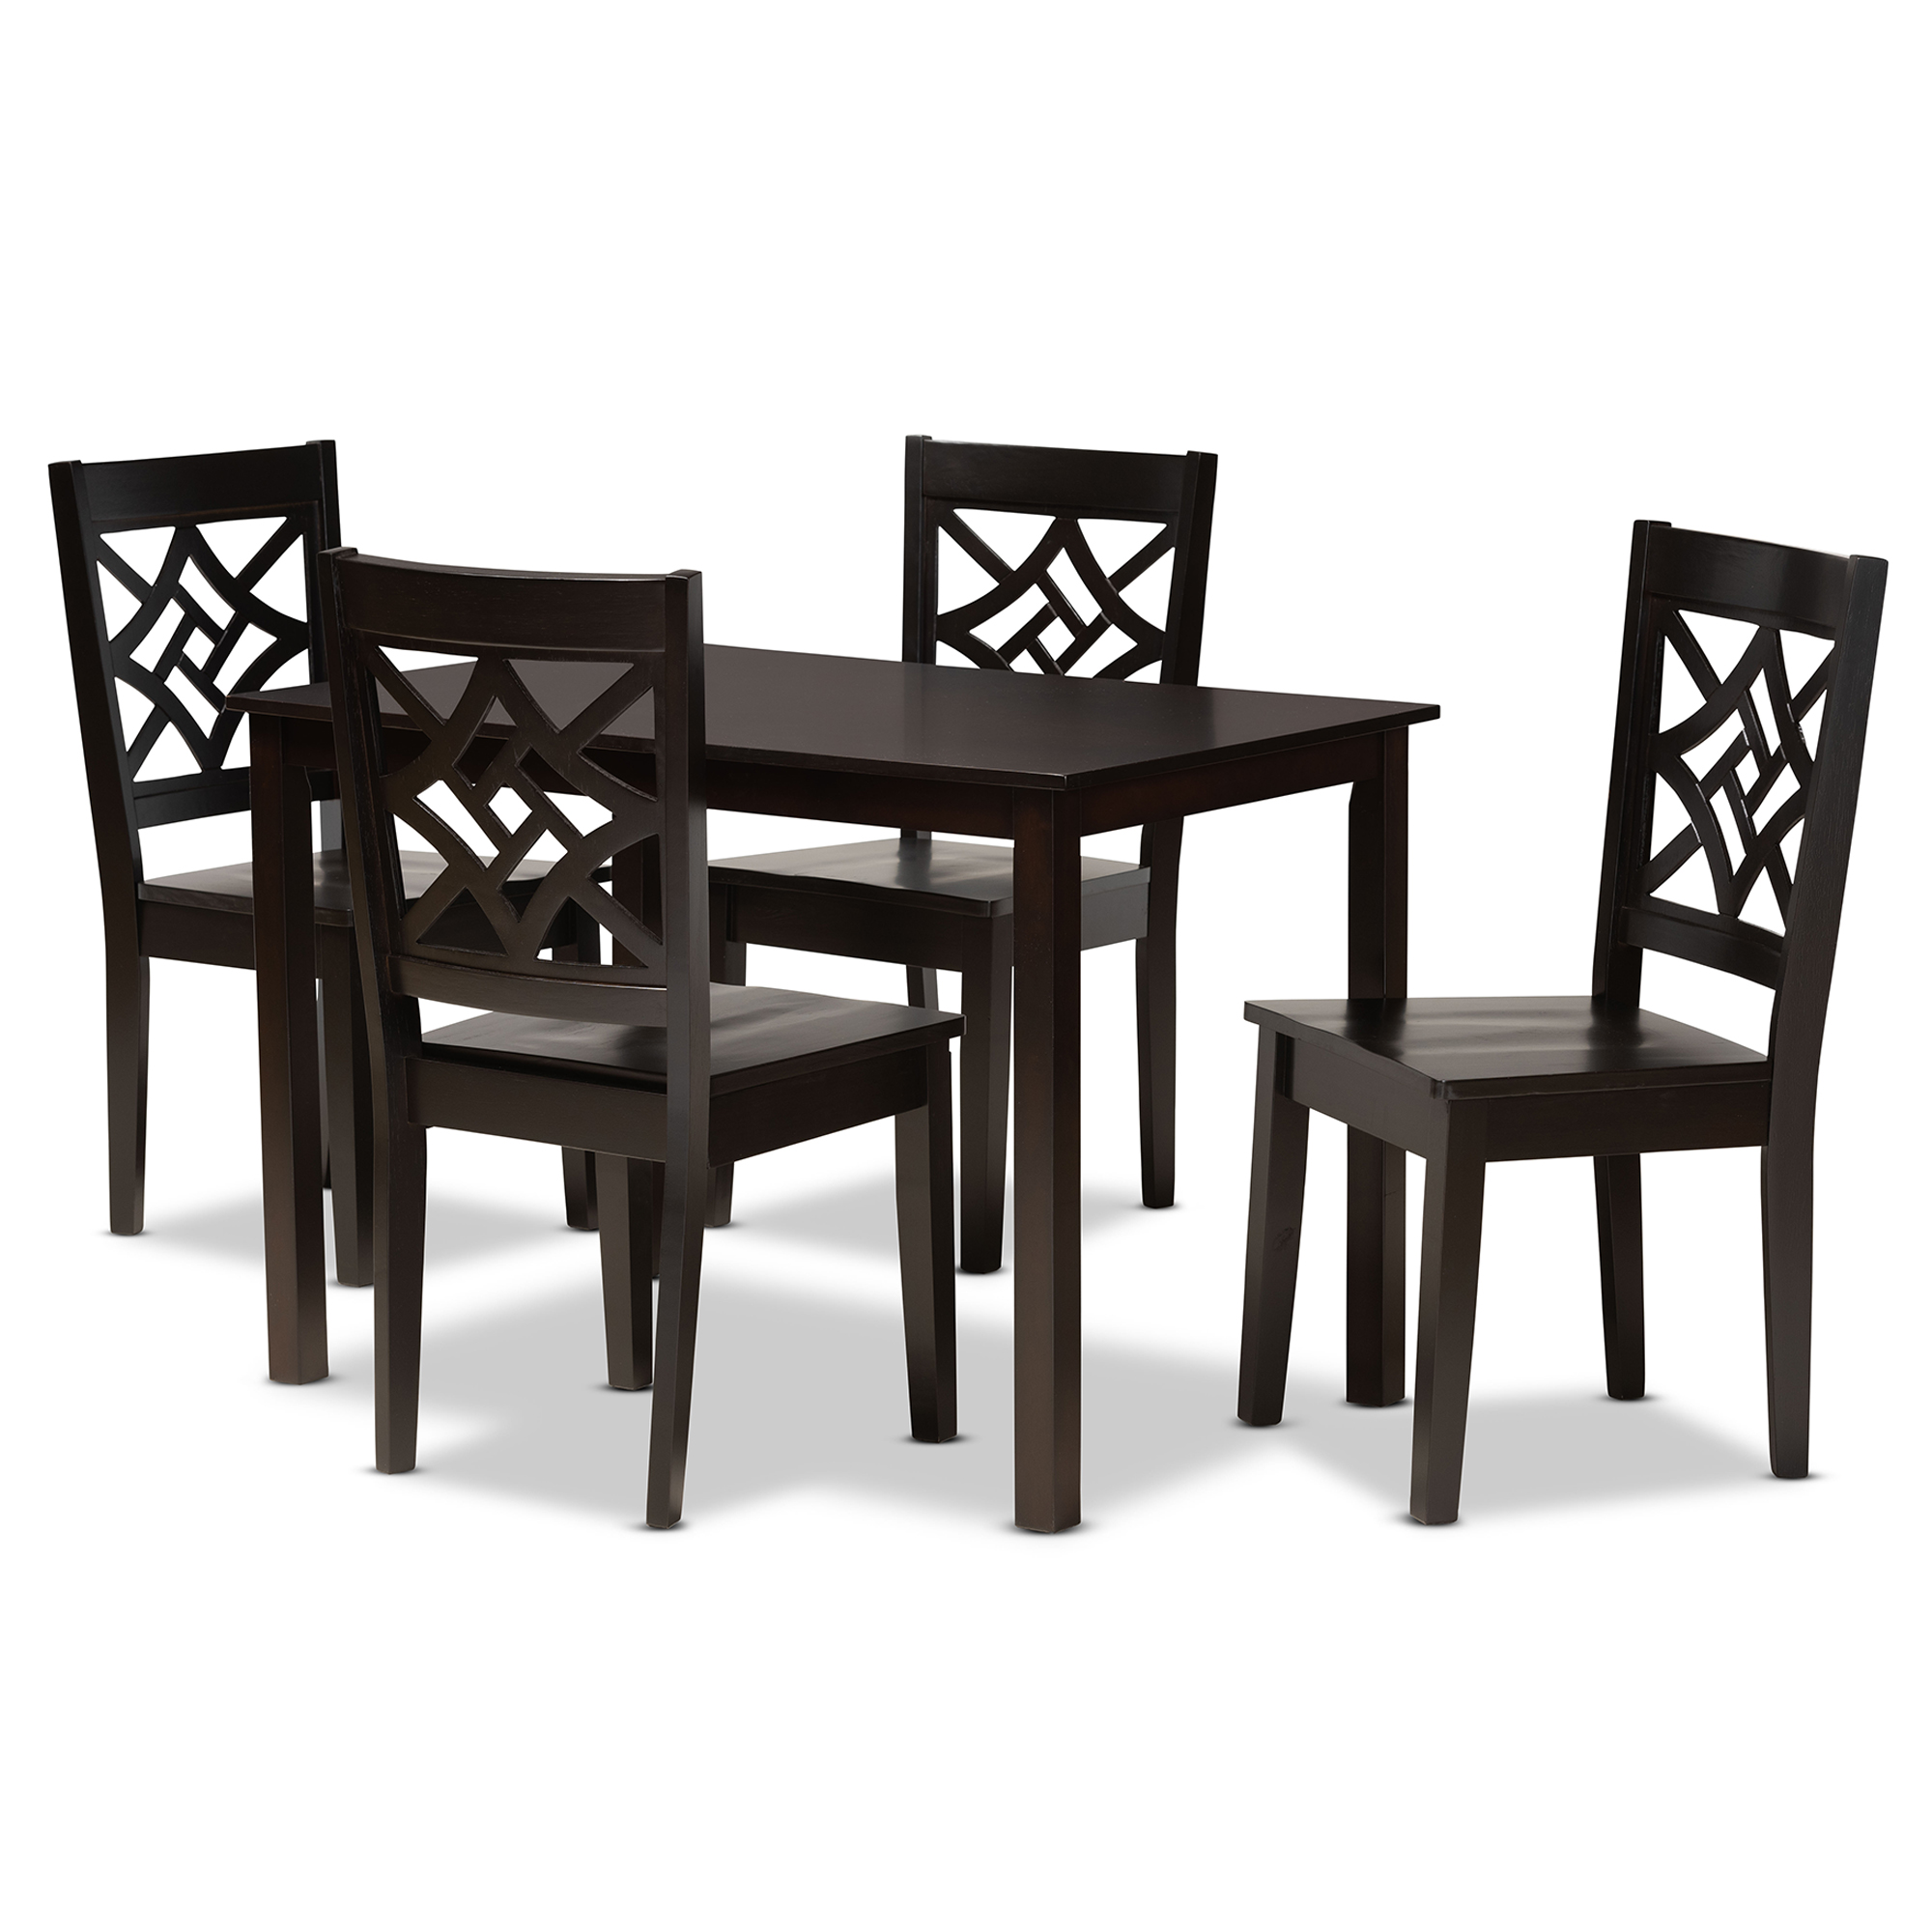 Baxton Studio Nicolette Modern And Contemporary Dark Brown Finished Wood 5 Piece Dining Set